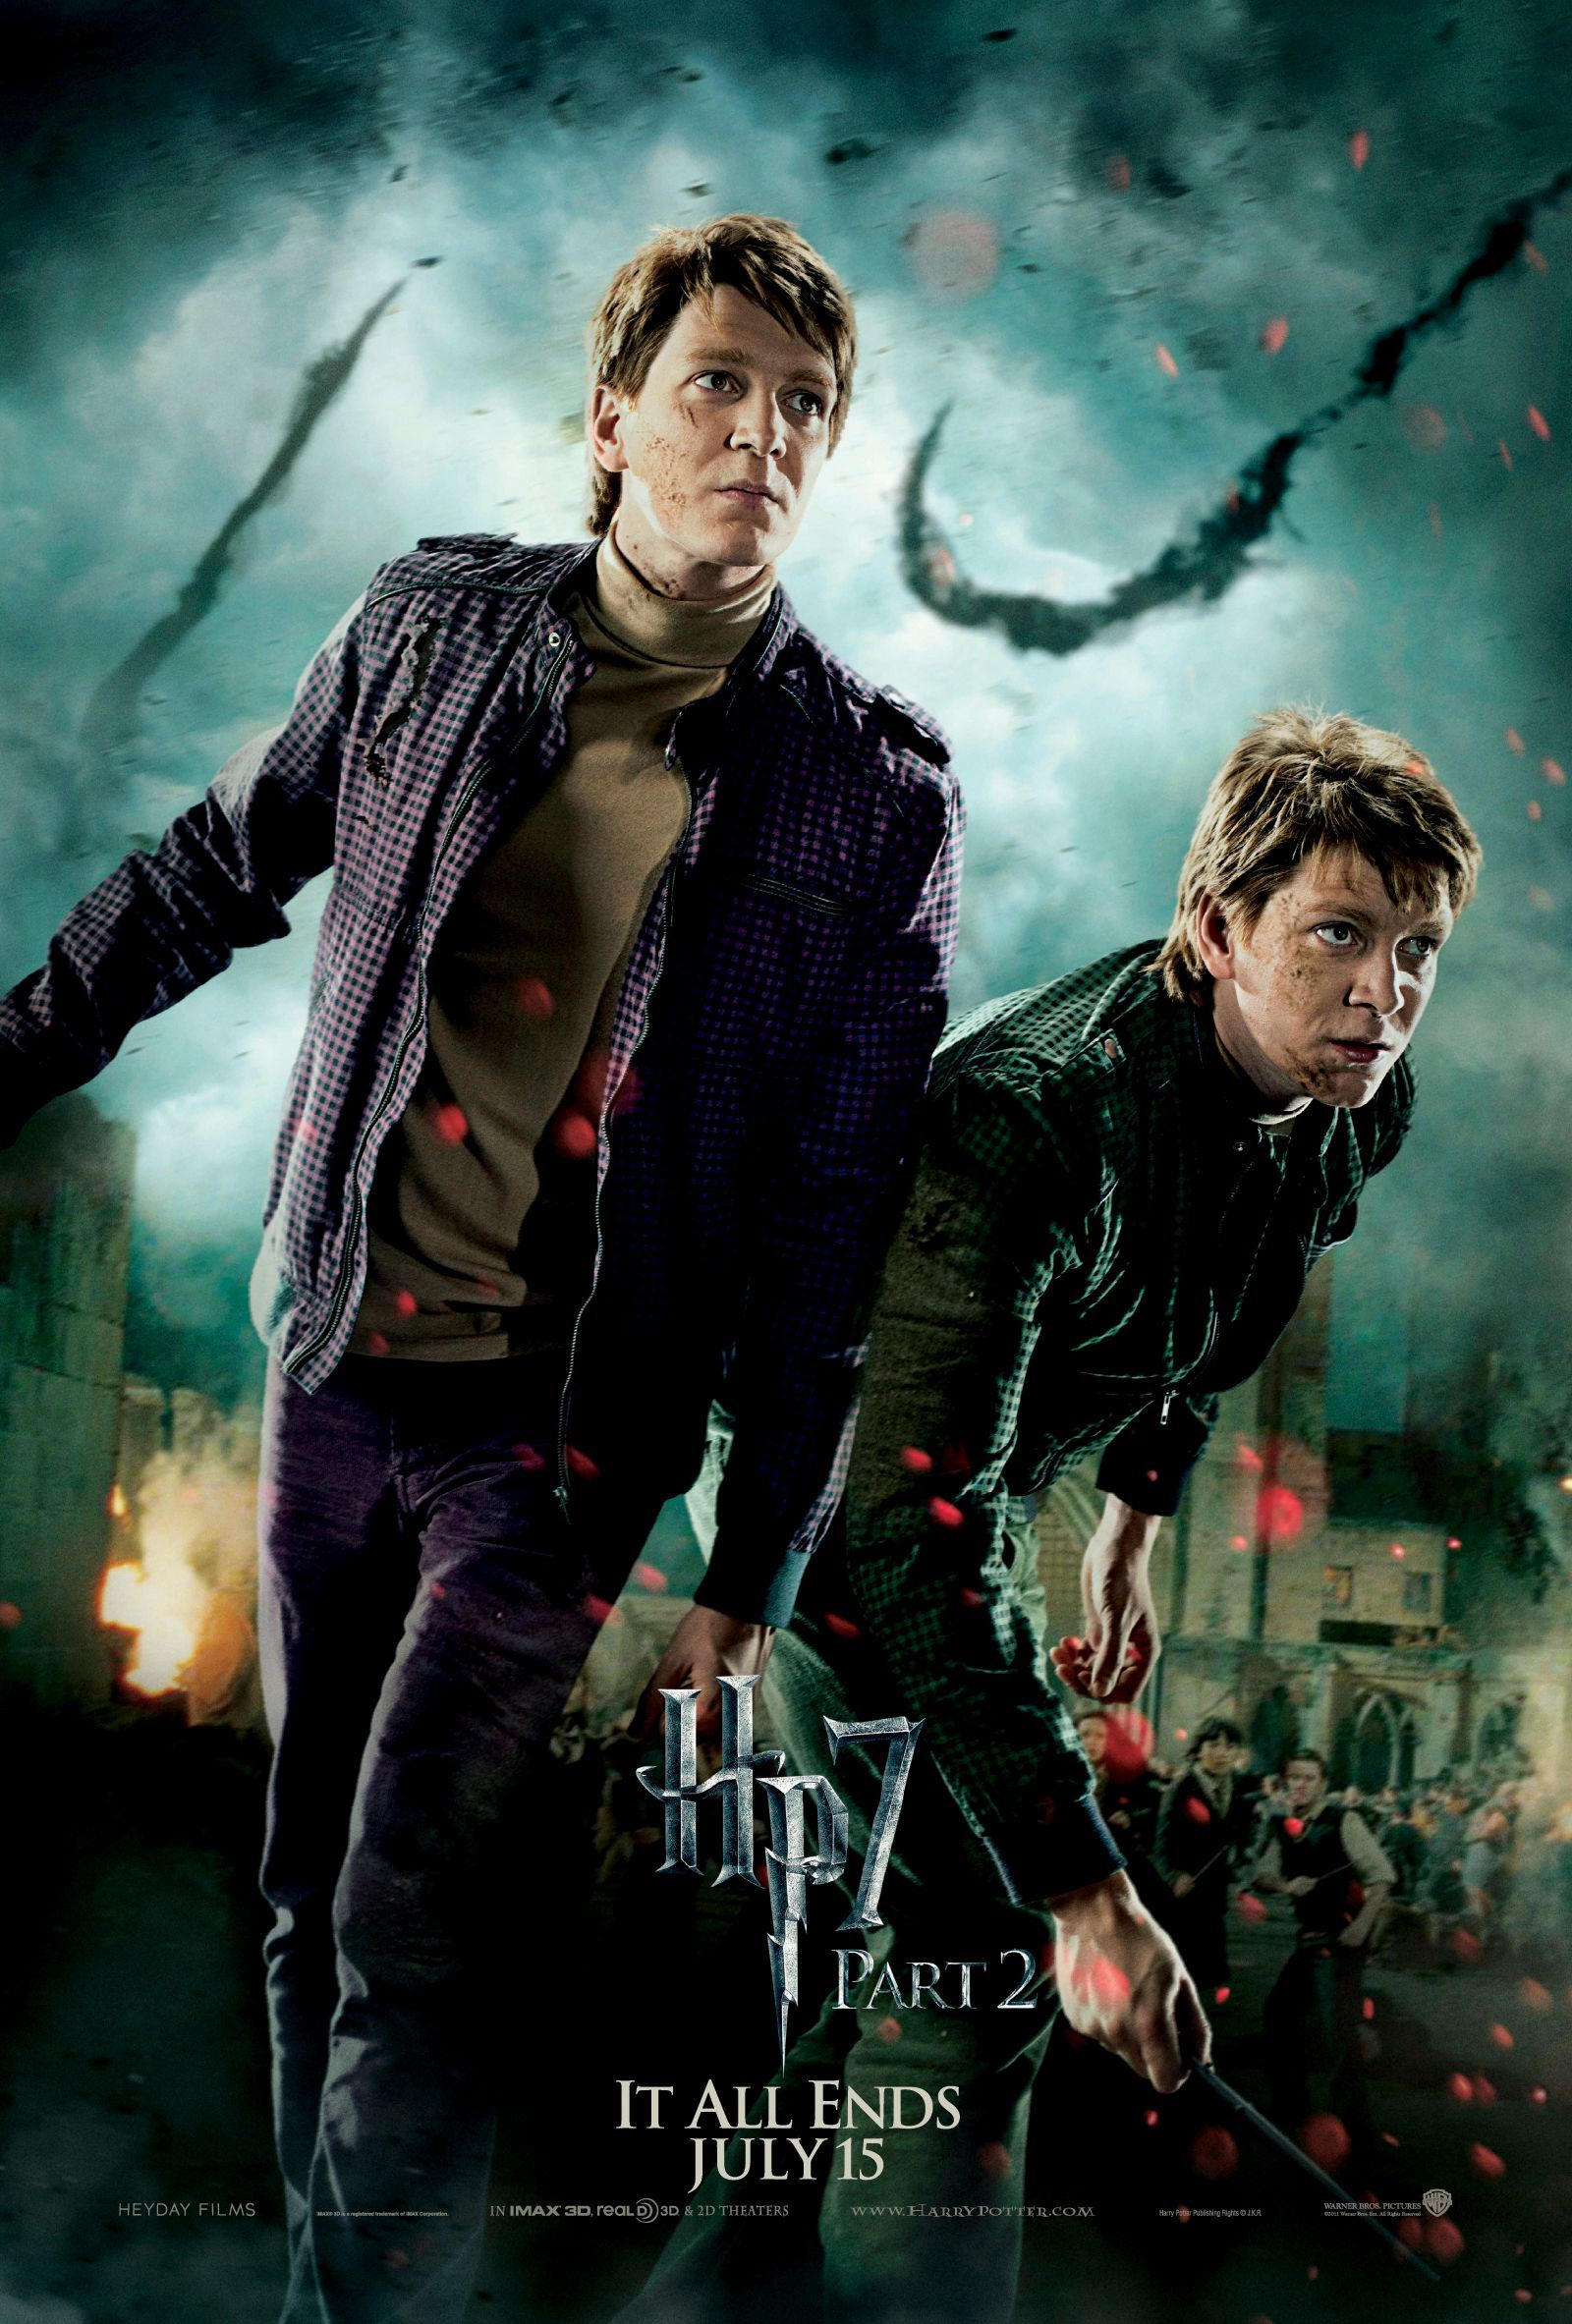 Harry Potter And The Deathly Hallows Part 2 Http Www Imdb Com Title Tt1201607 Harry Potter Poster Fred And George Weasley George Weasley